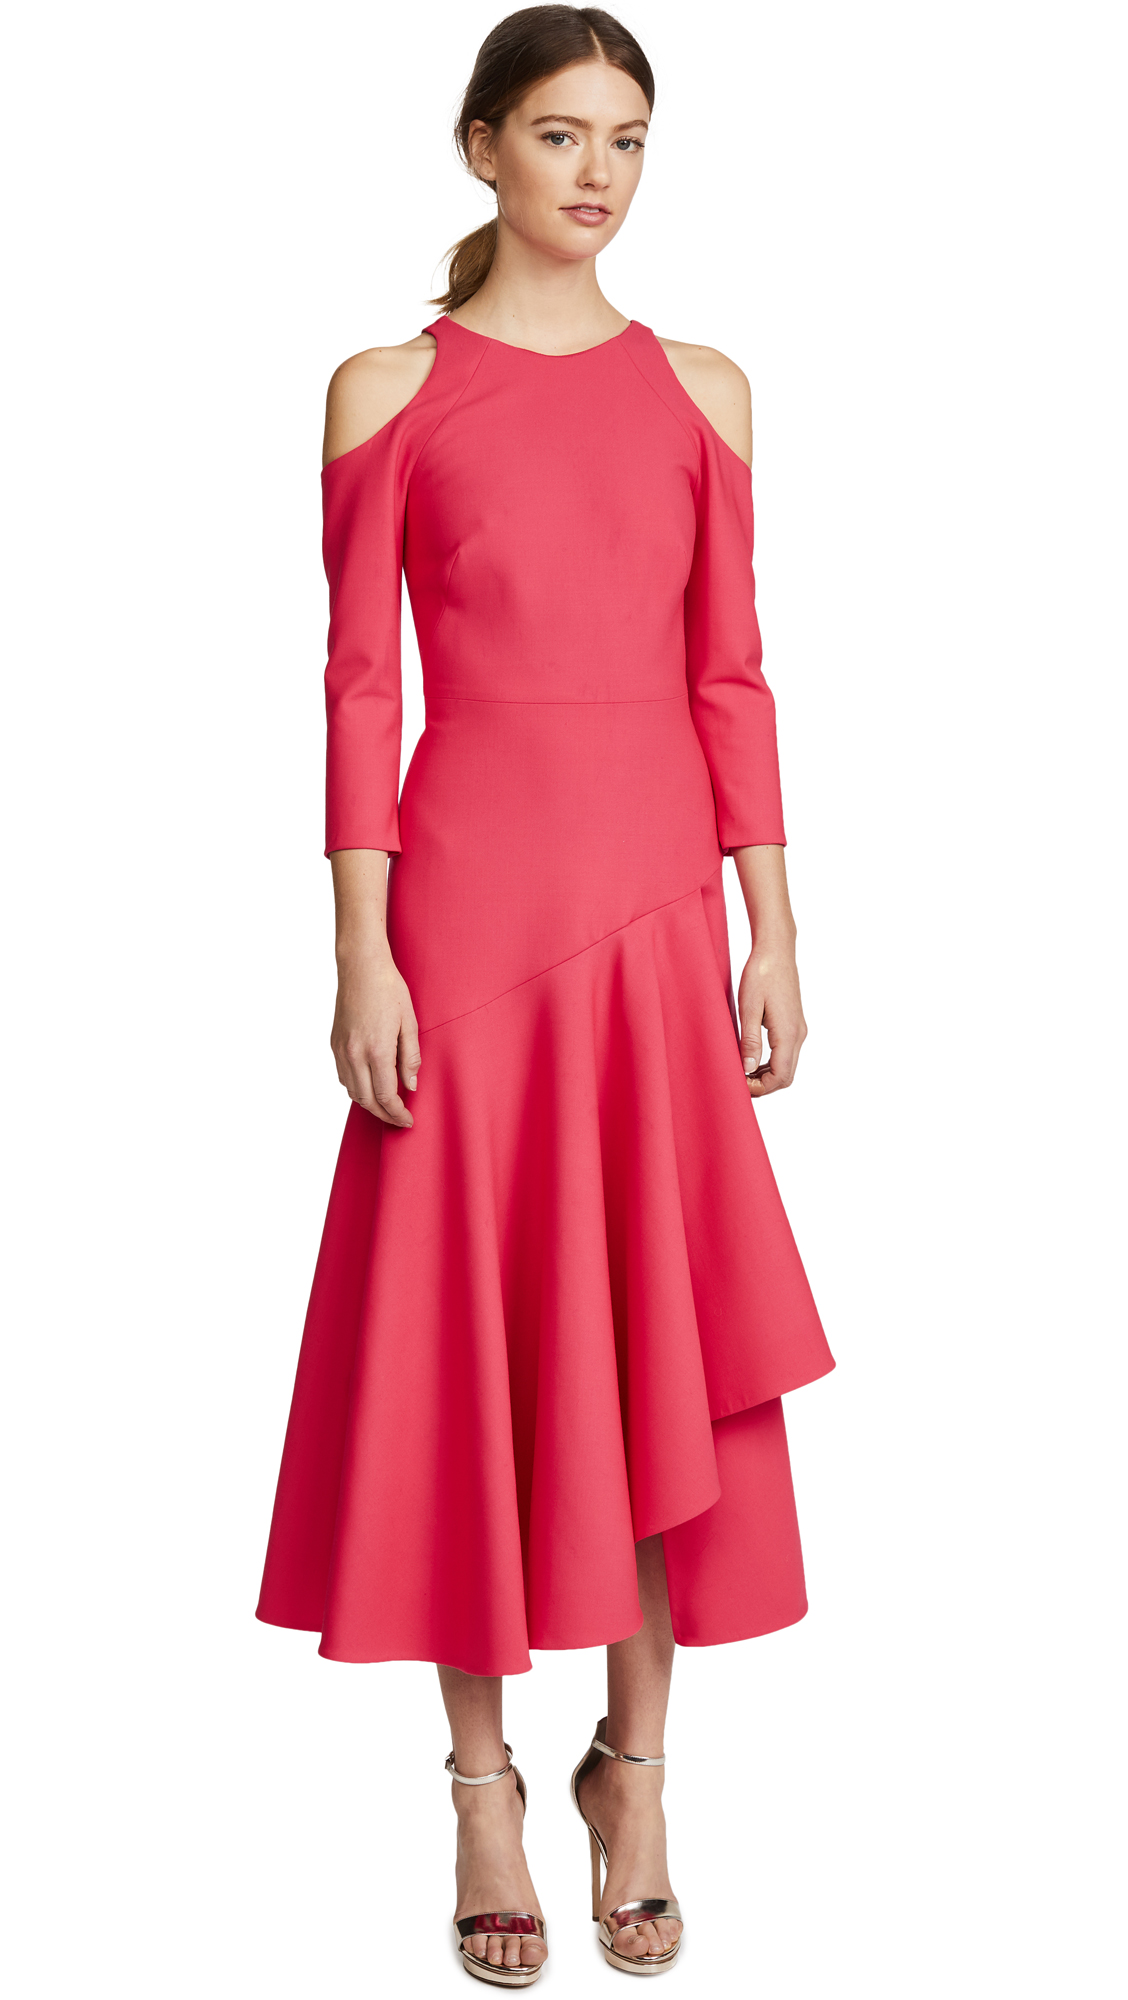 Temperley London Mercury Plain Ruffle Dress